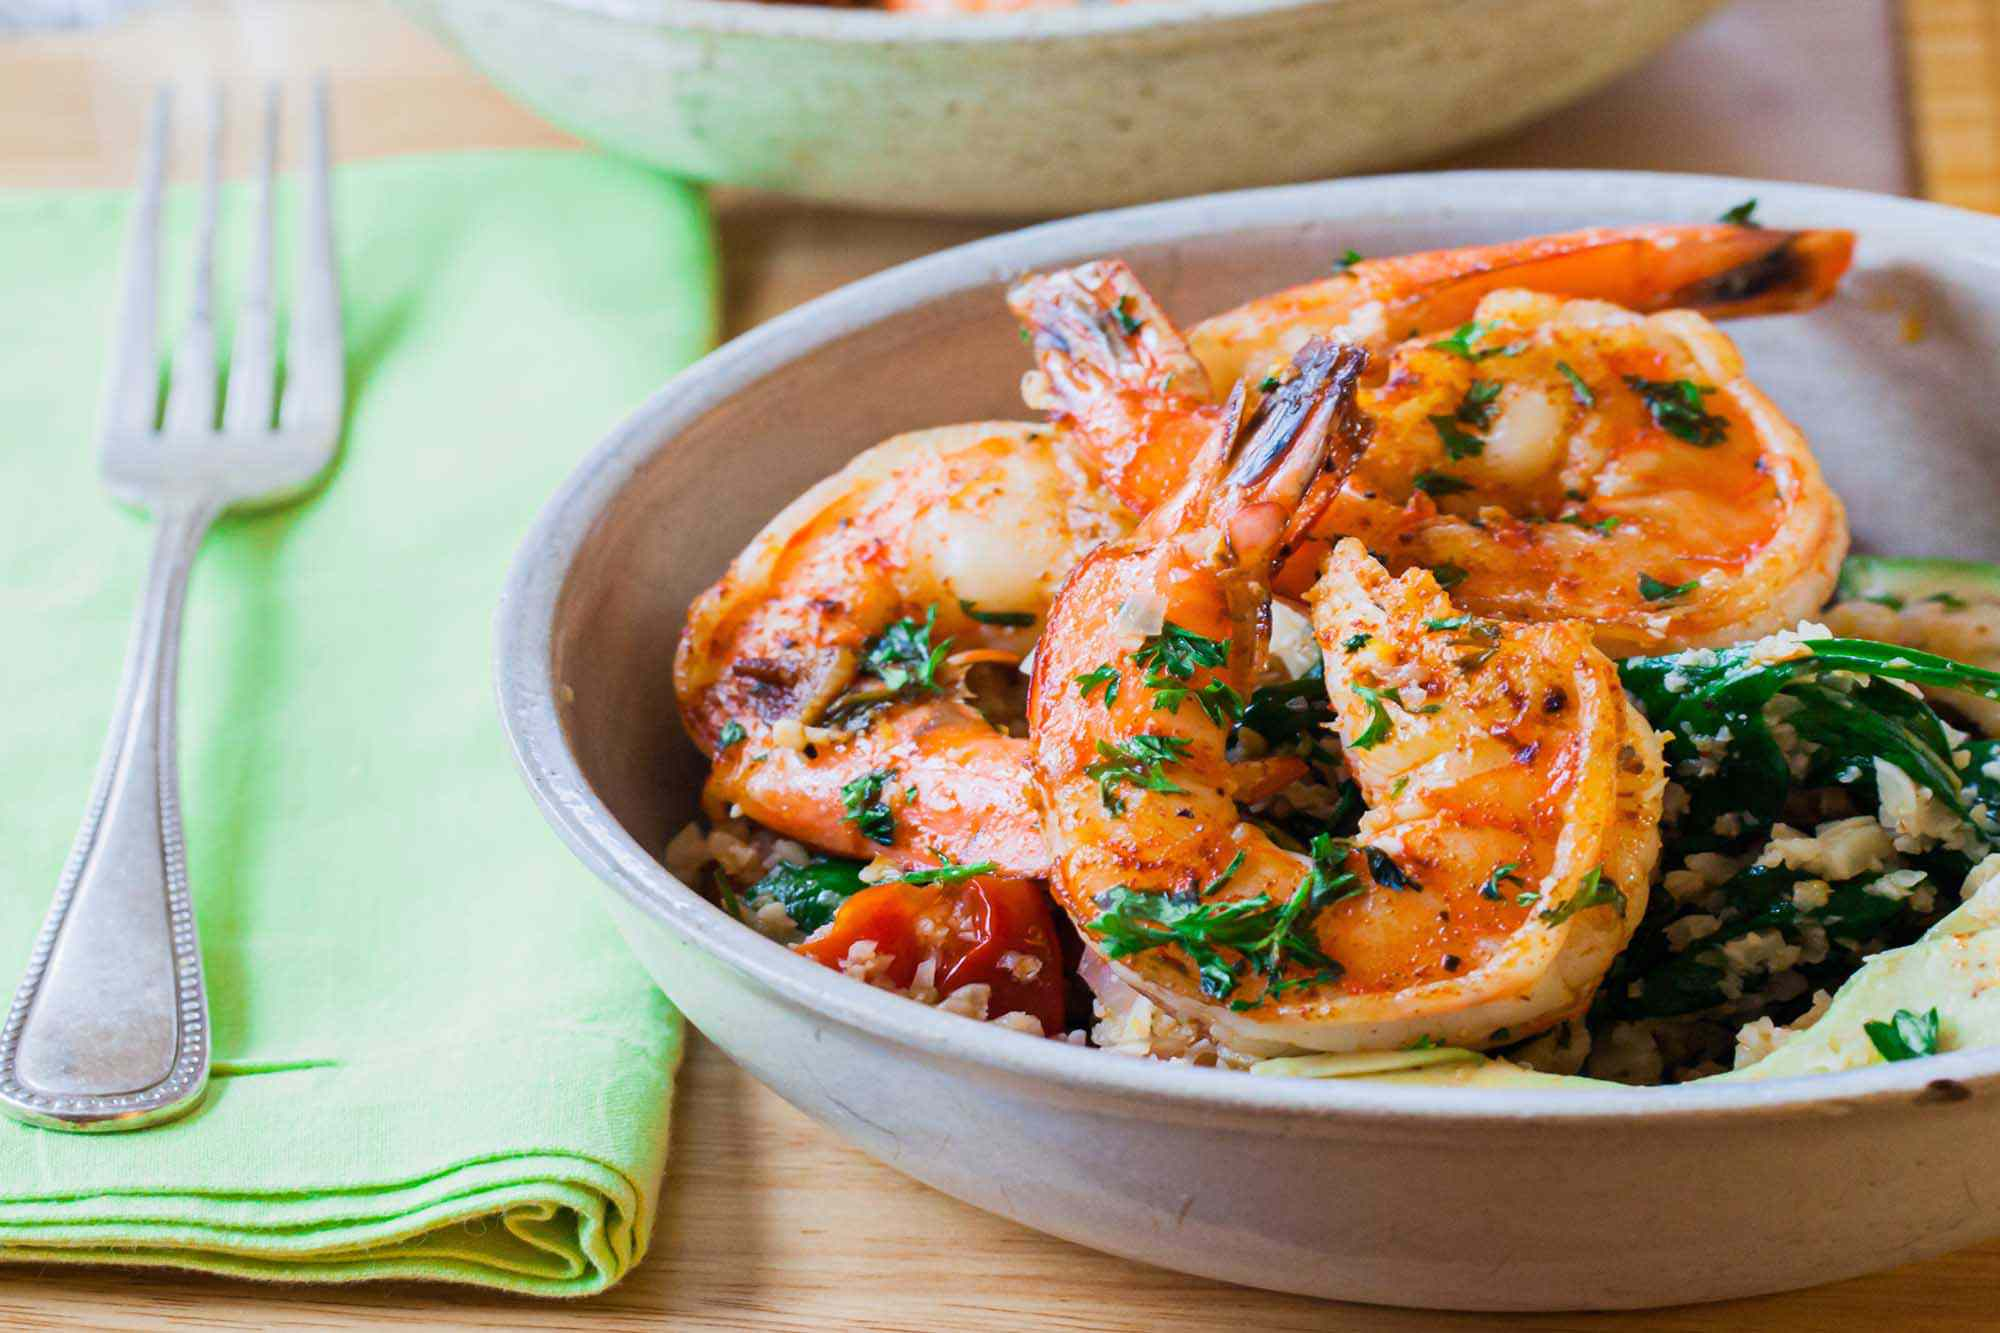 A shallow bowl of garlic shrimp cauliflower rice with a napkin and fork to the left. Sauteed shrimp and herbs are visible in the bowl.